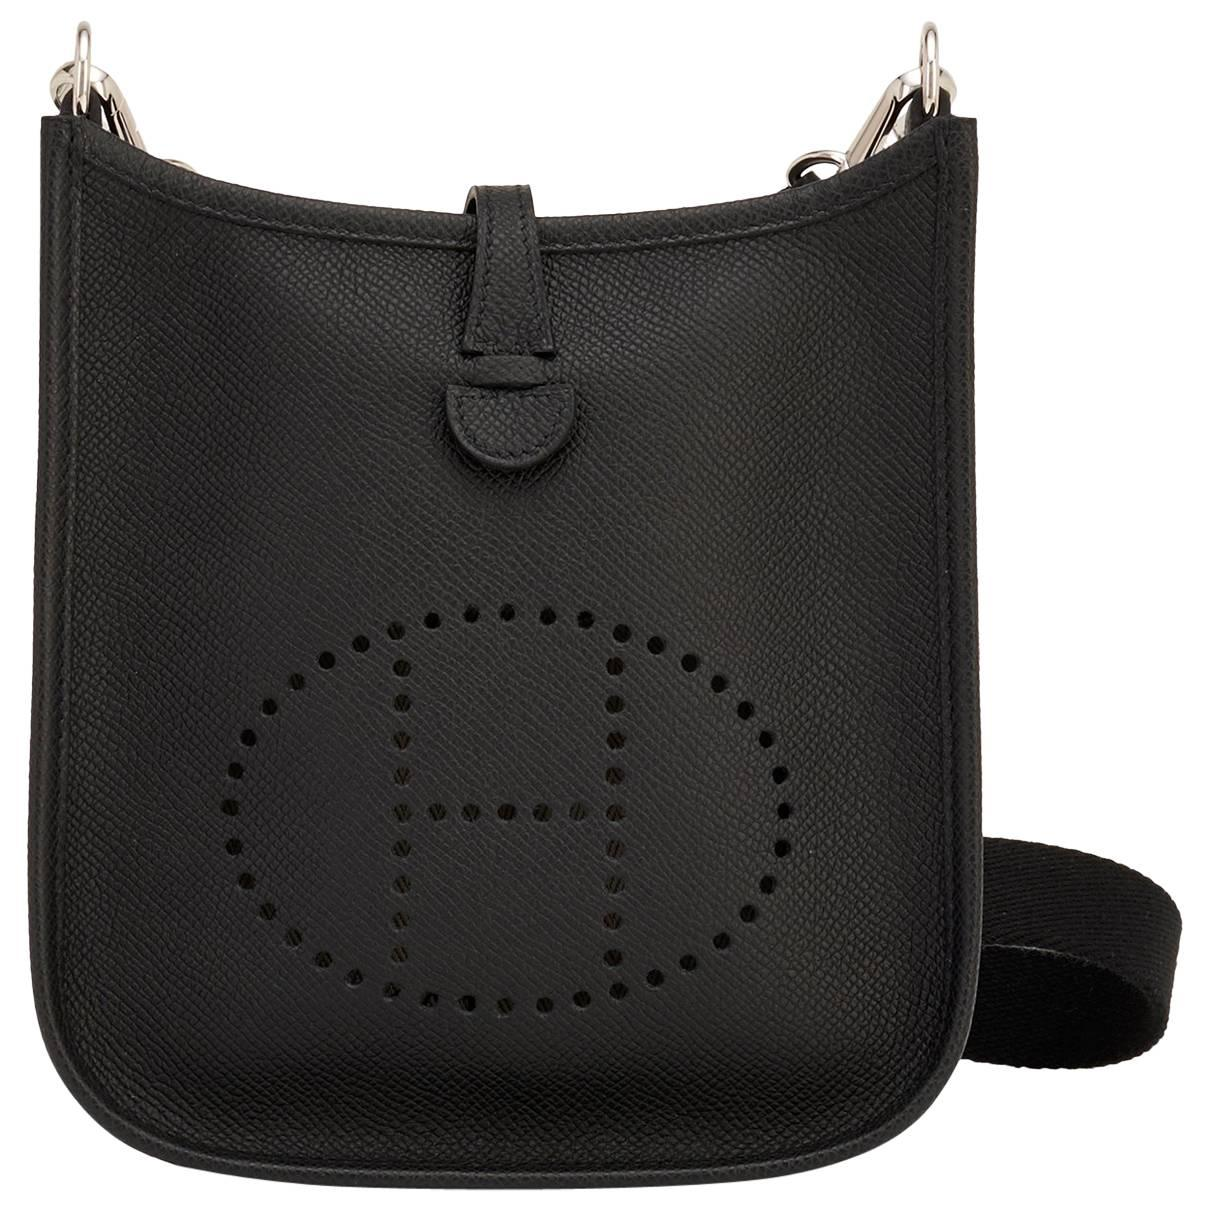 Hermes Black Evelyne TPM Shoulder Cross Body Messenger Bag